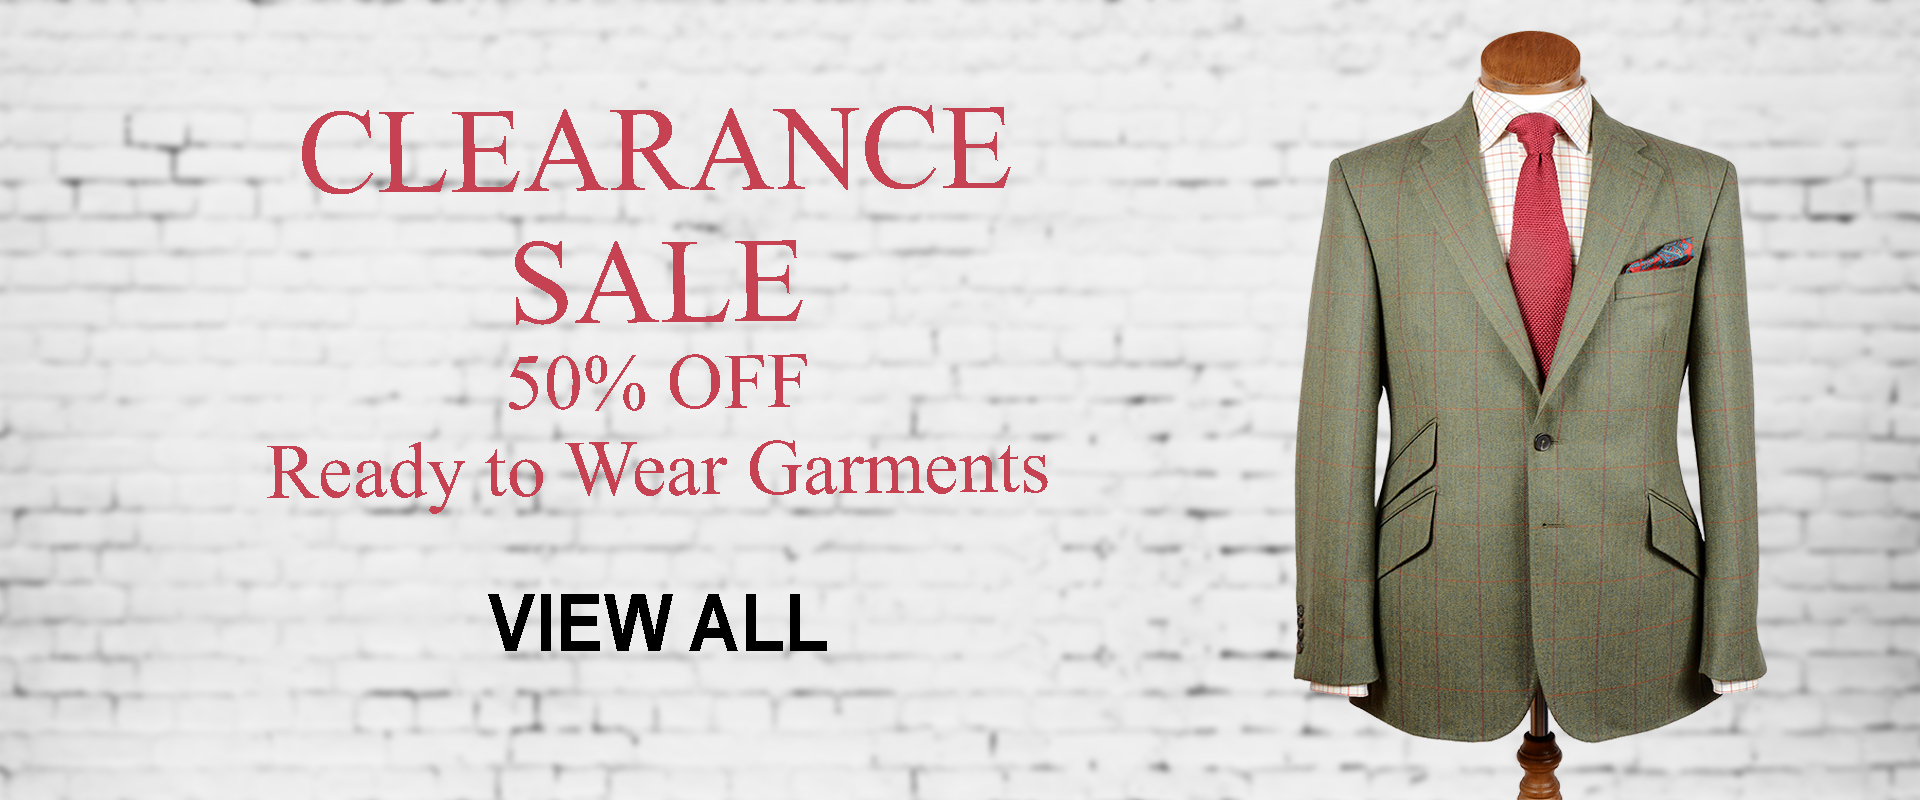 Tweed Jacket Sale Clearance